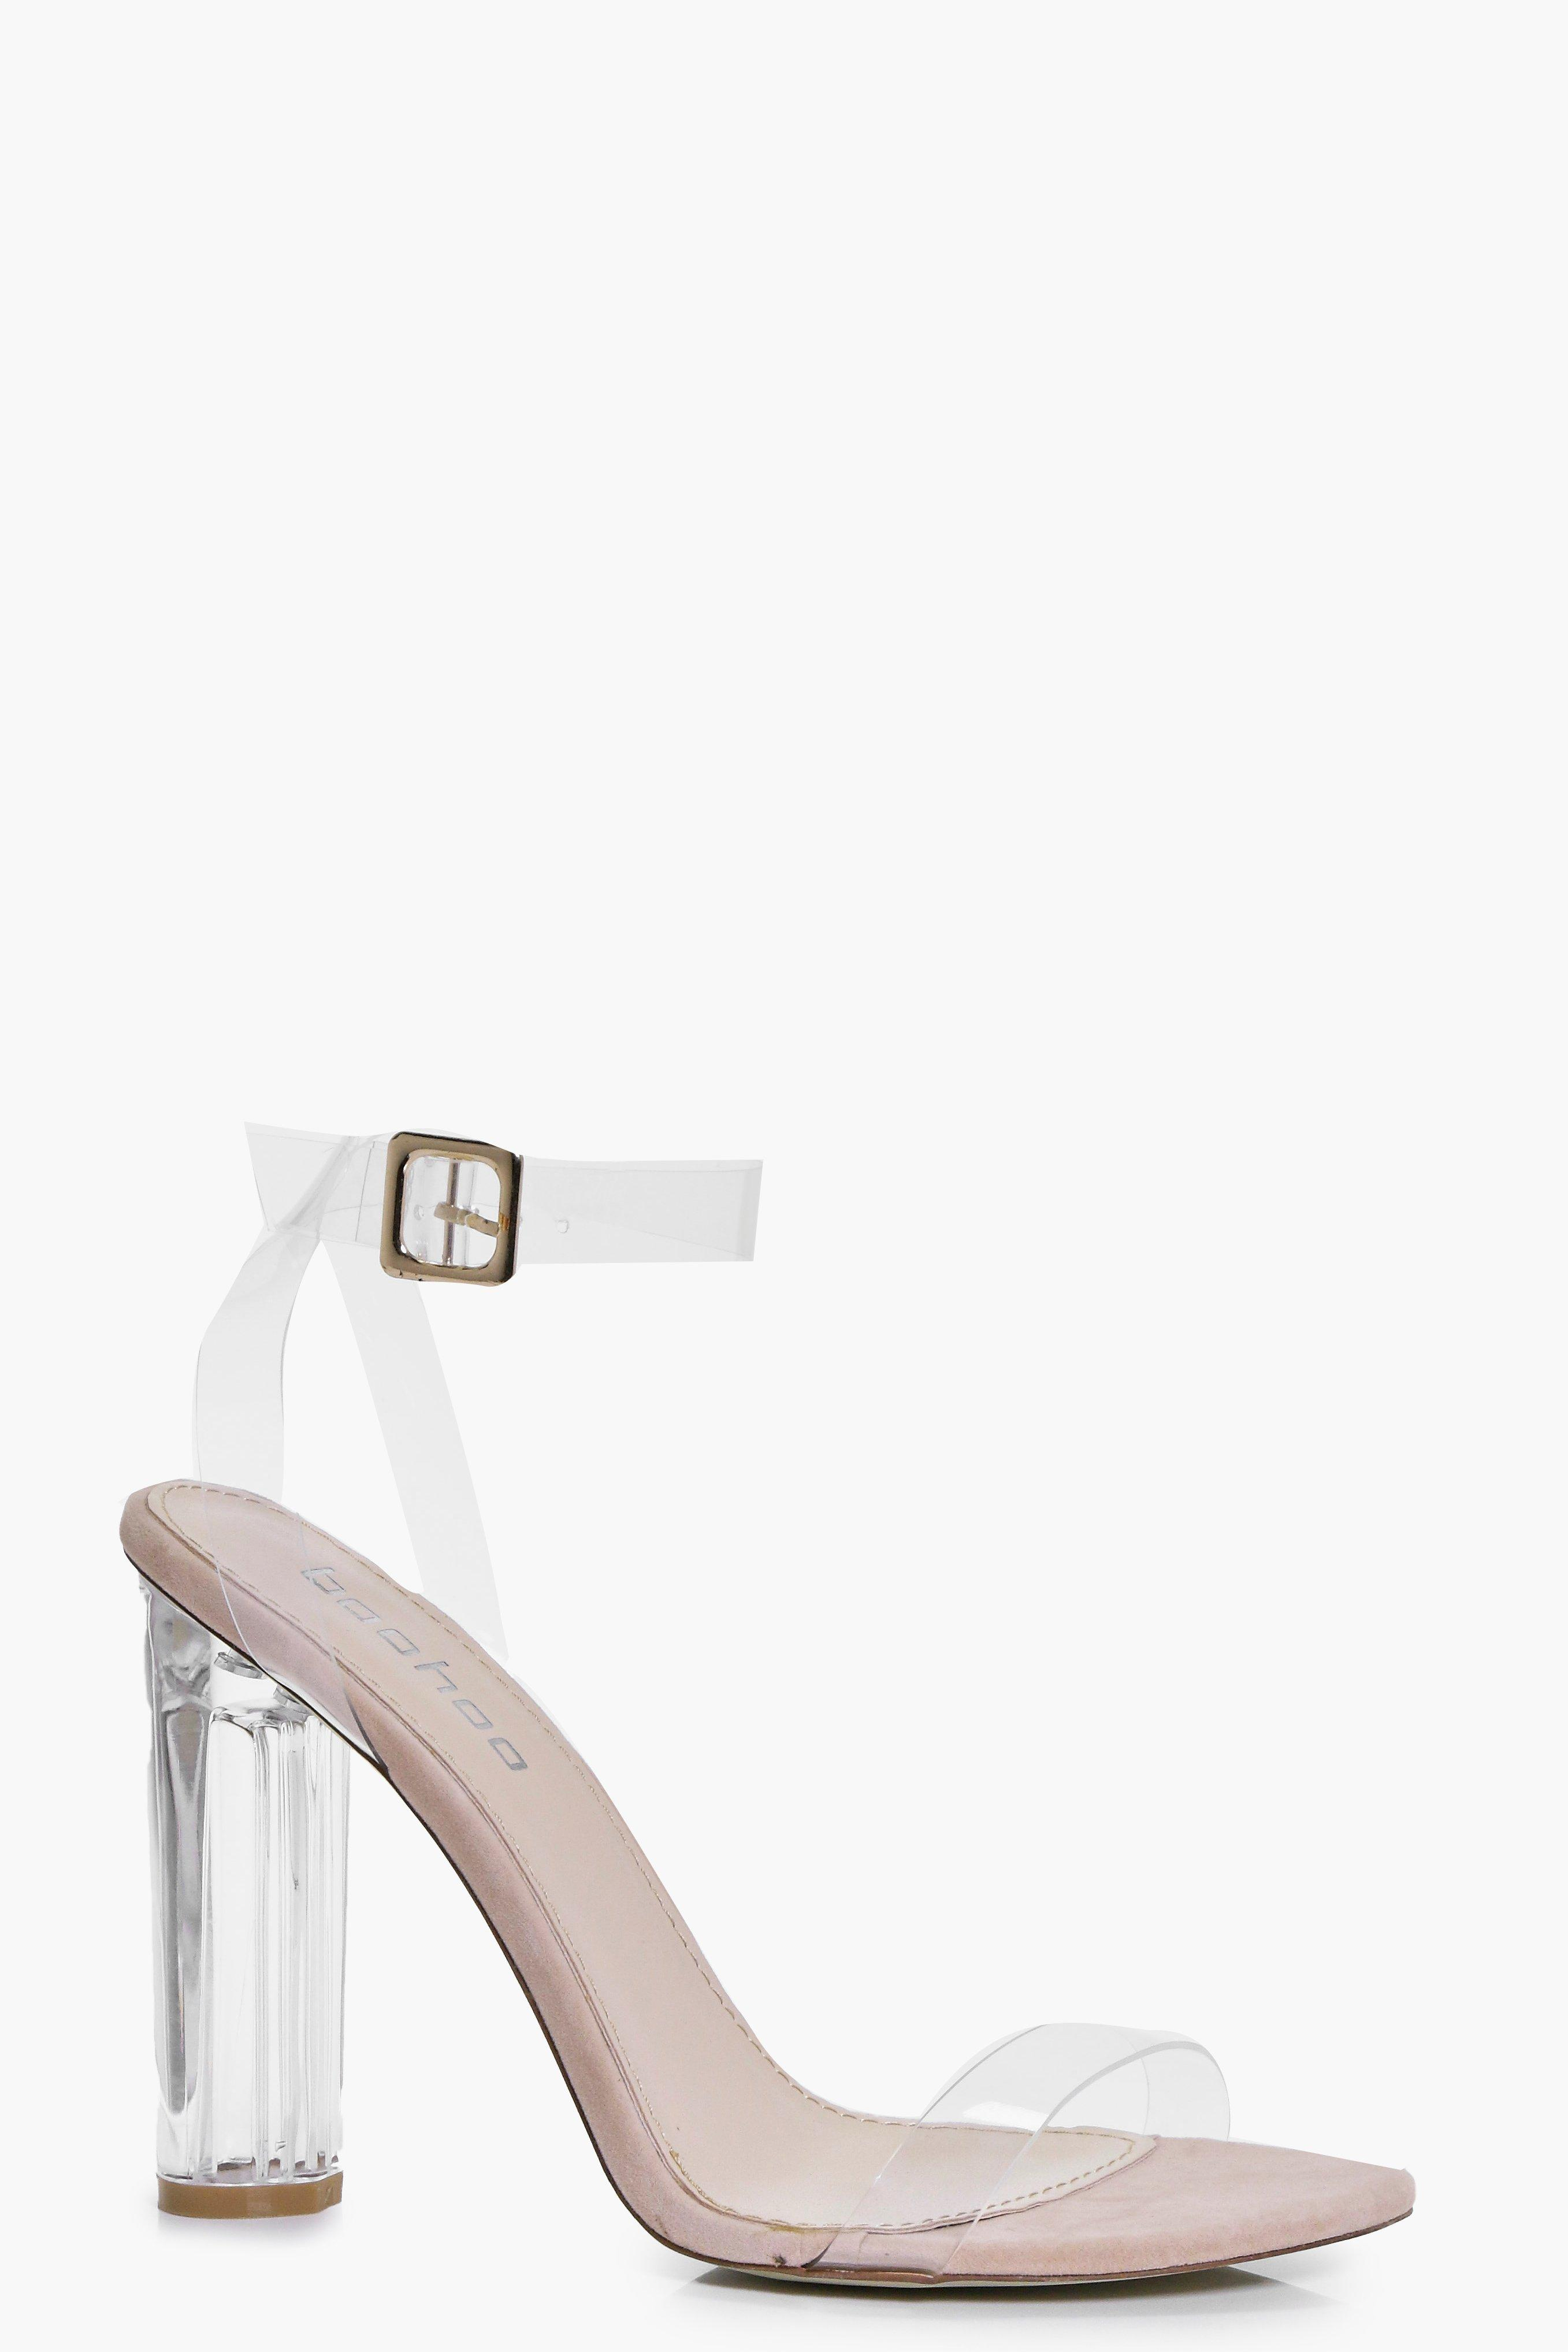 Lola Clear Cylinder Two Part Heels